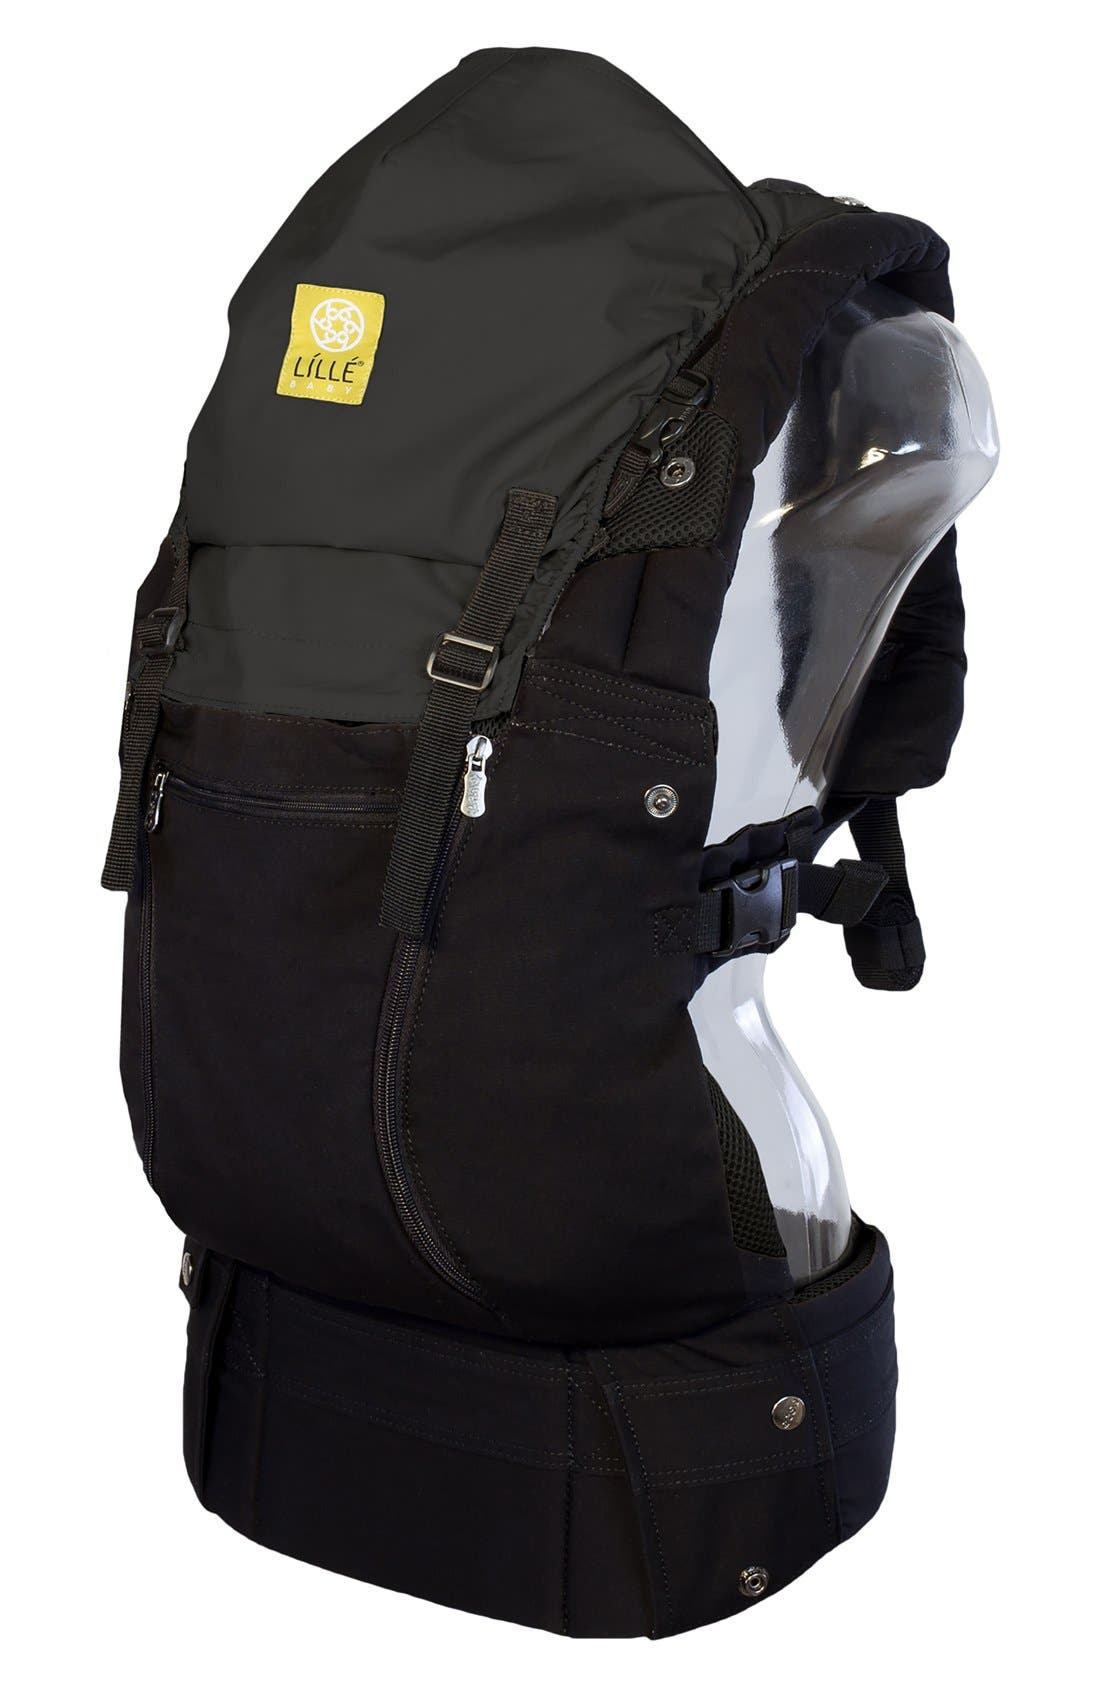 Alternate Image 2  - LILLEbaby 'Complete - All Seasons' Baby Carrier